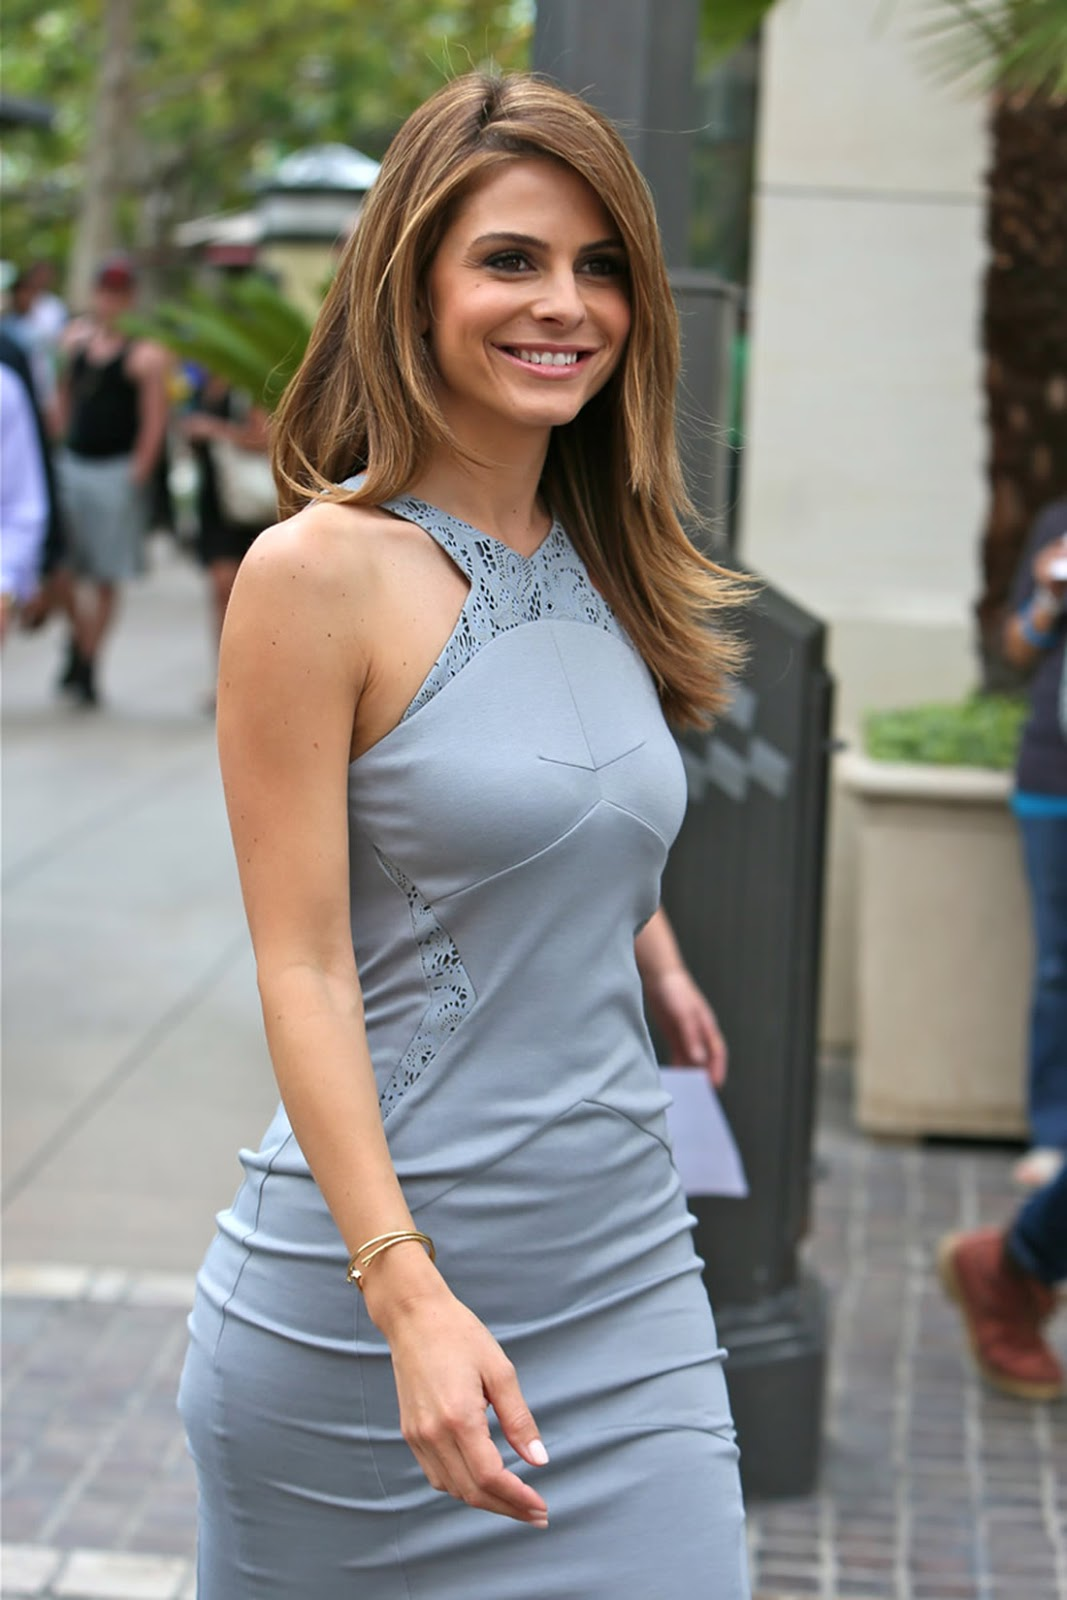 MARIA MENOUNOS LATEST PICTURES HOT - HIGH RESOLUTION PICTURES